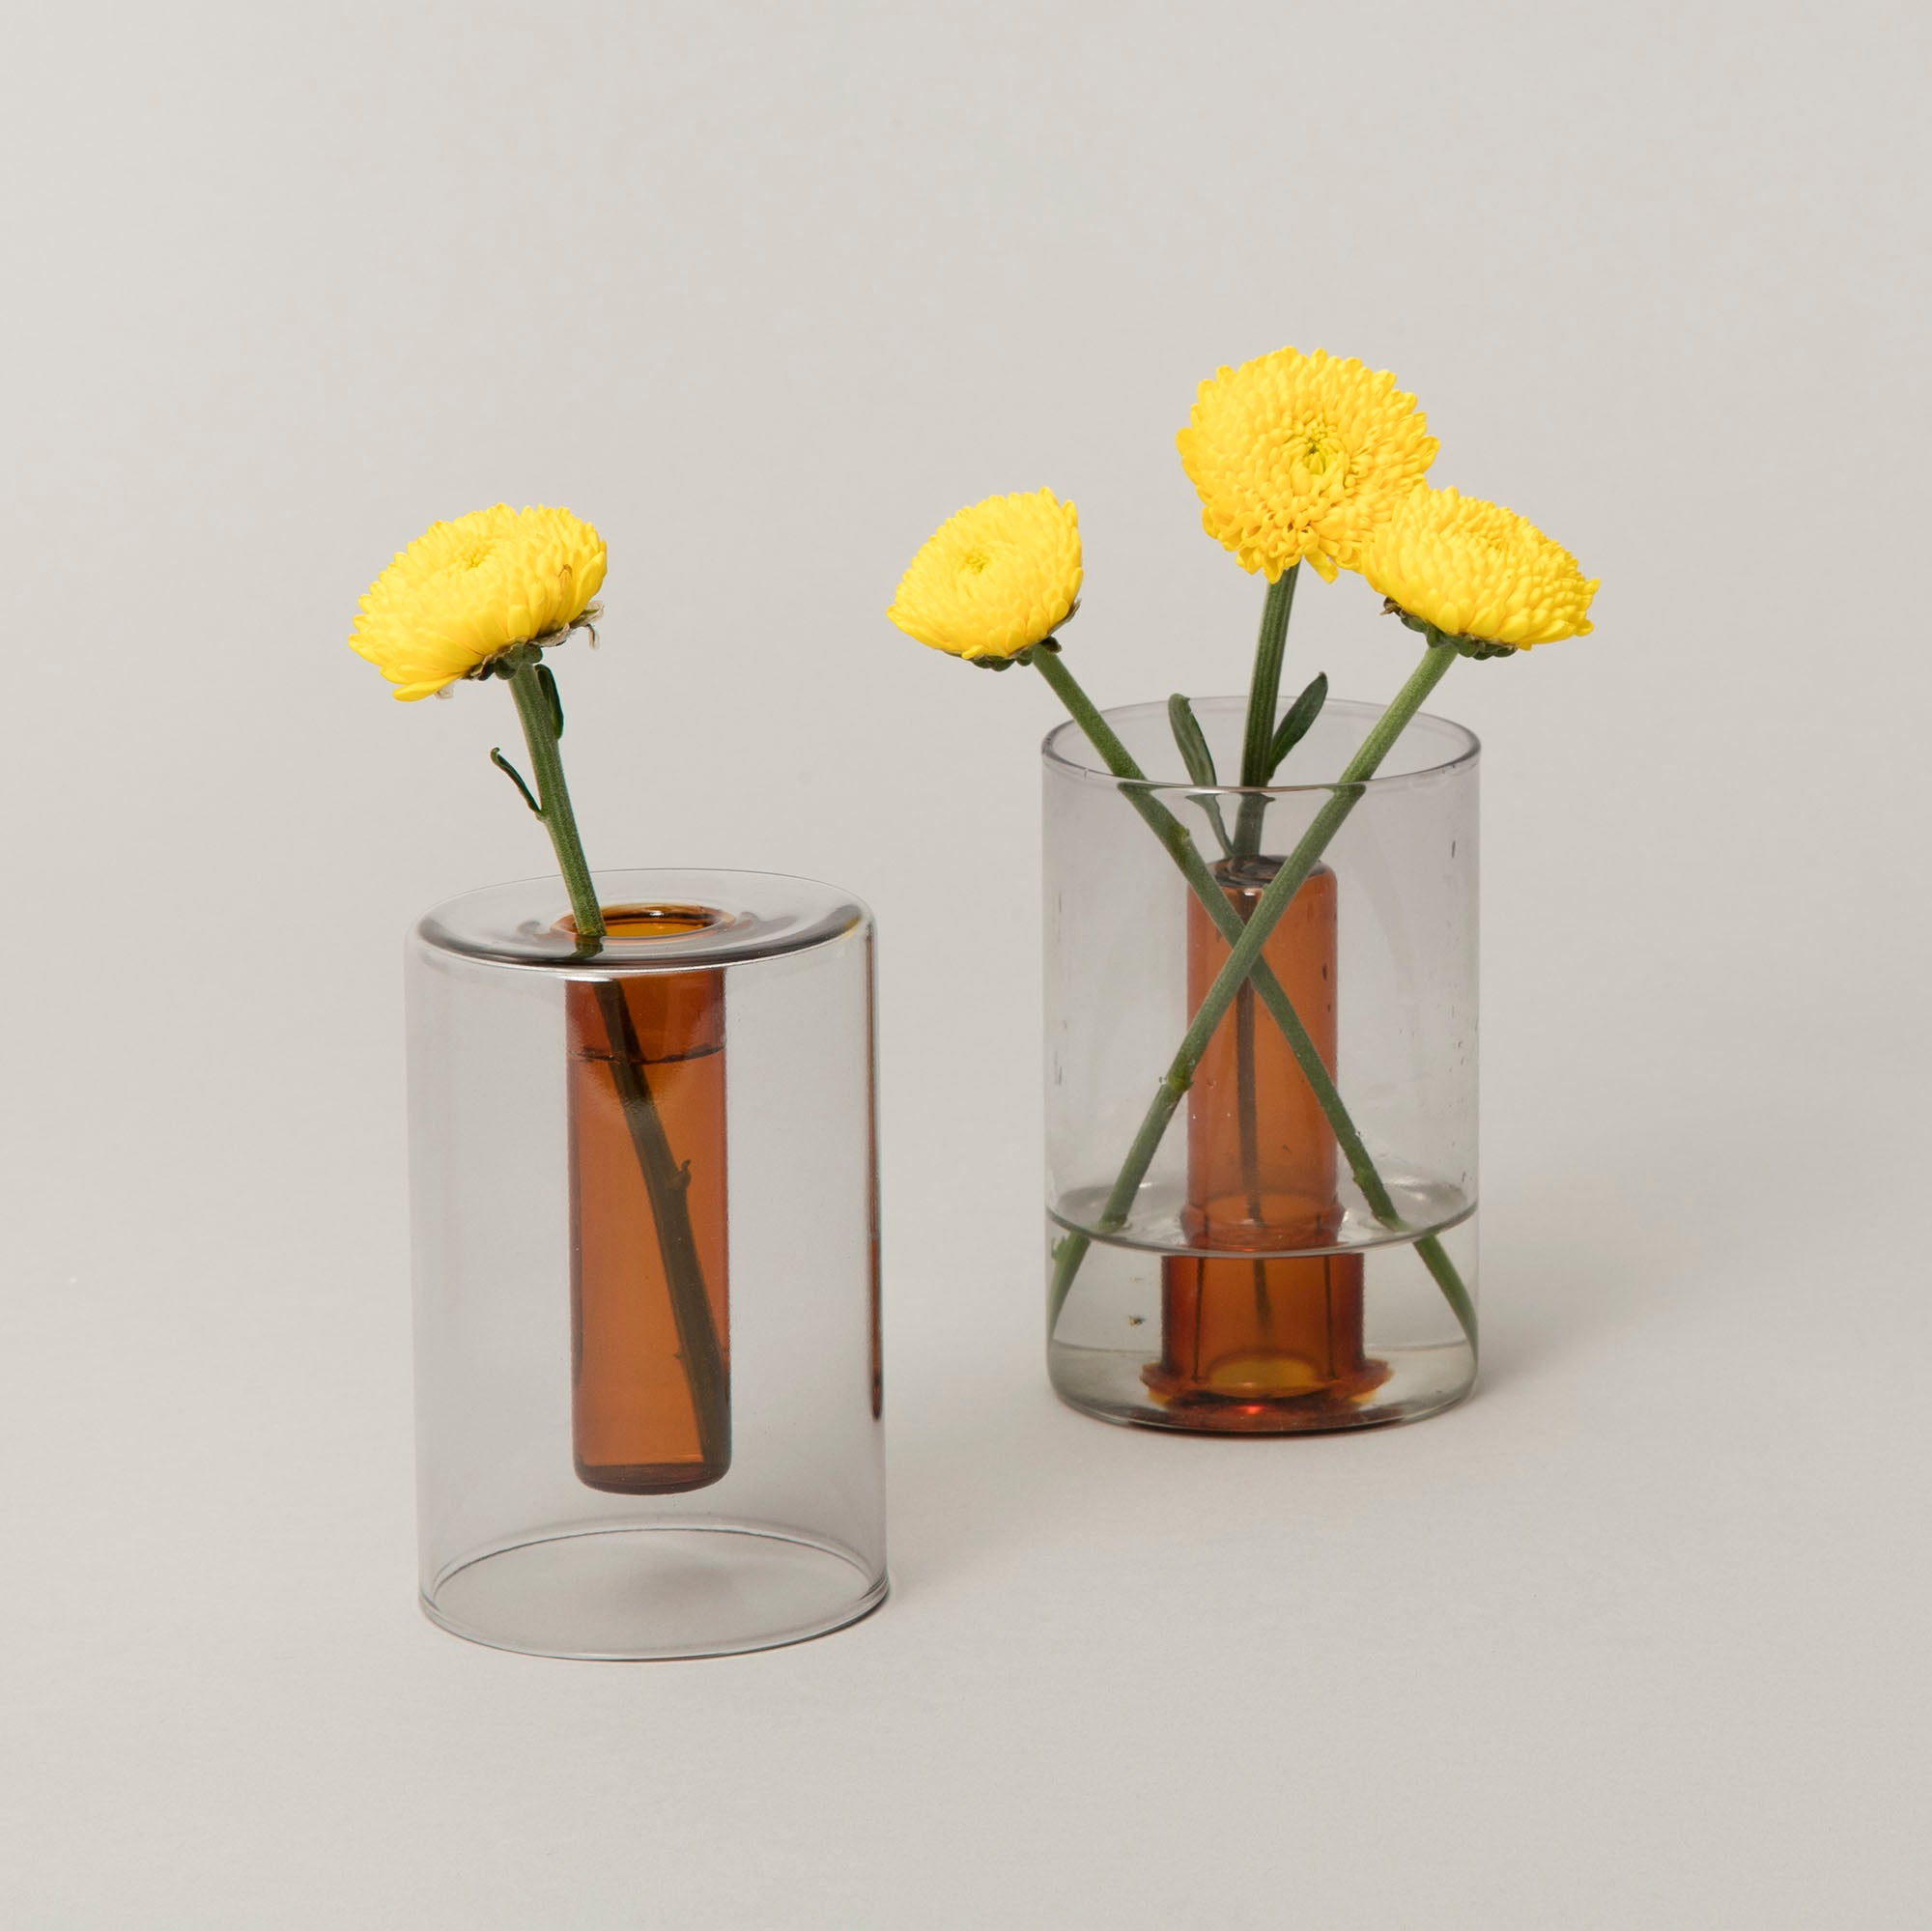 Block Reversible Glass Vase - Small 2